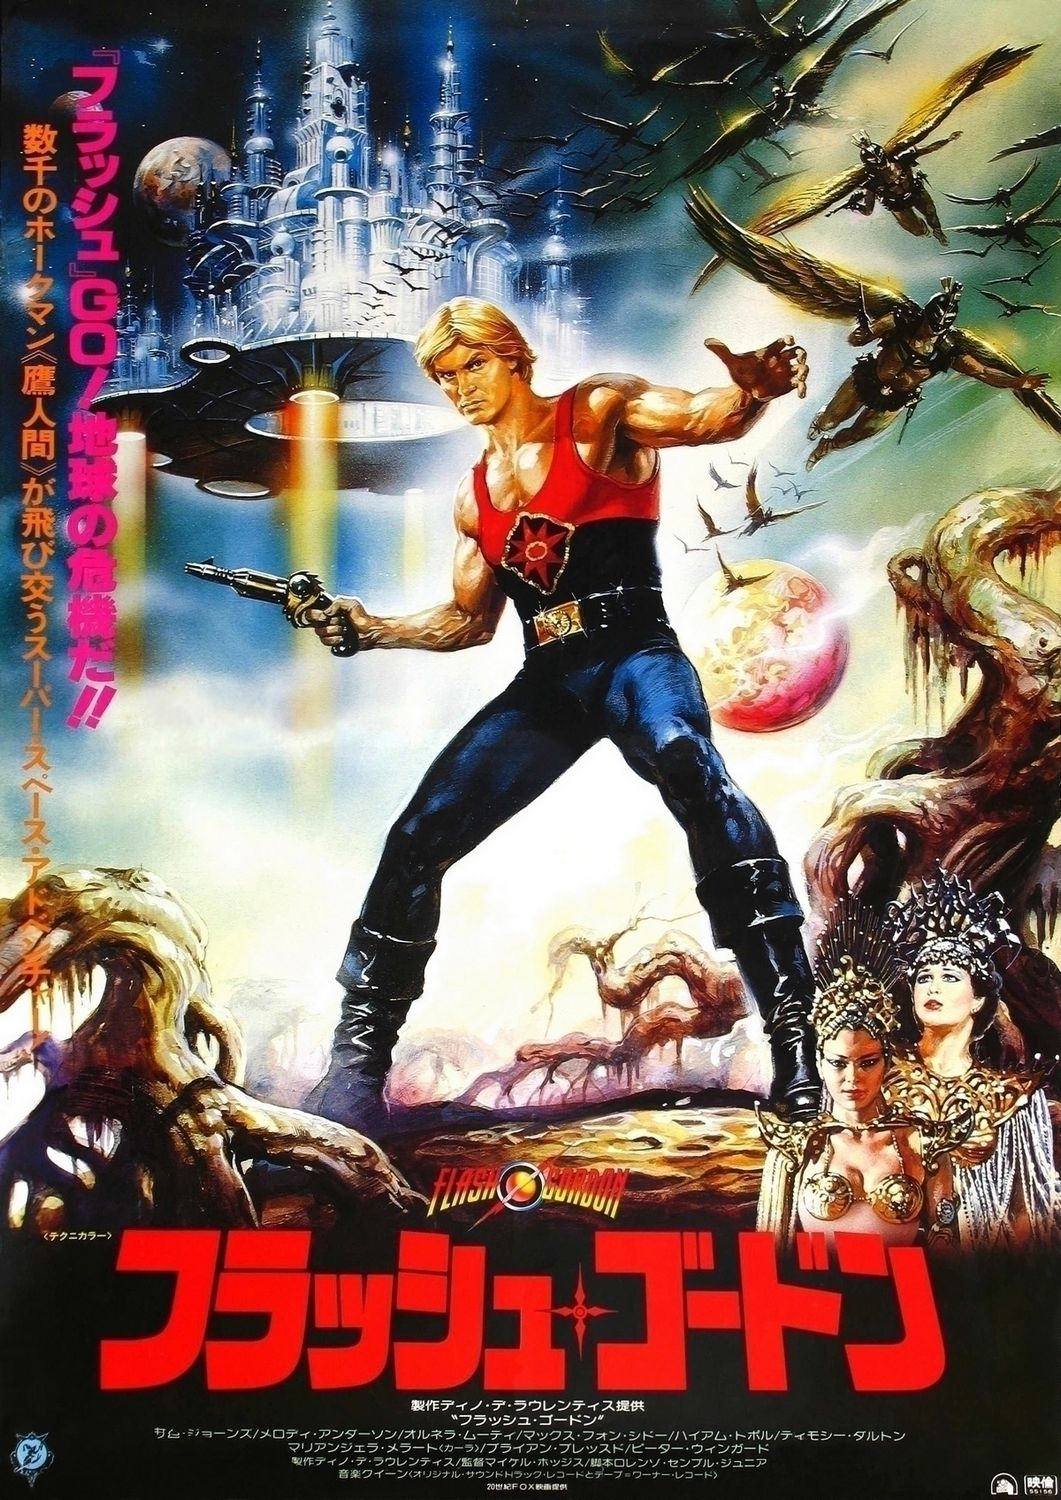 Flash Gordon Poster #4